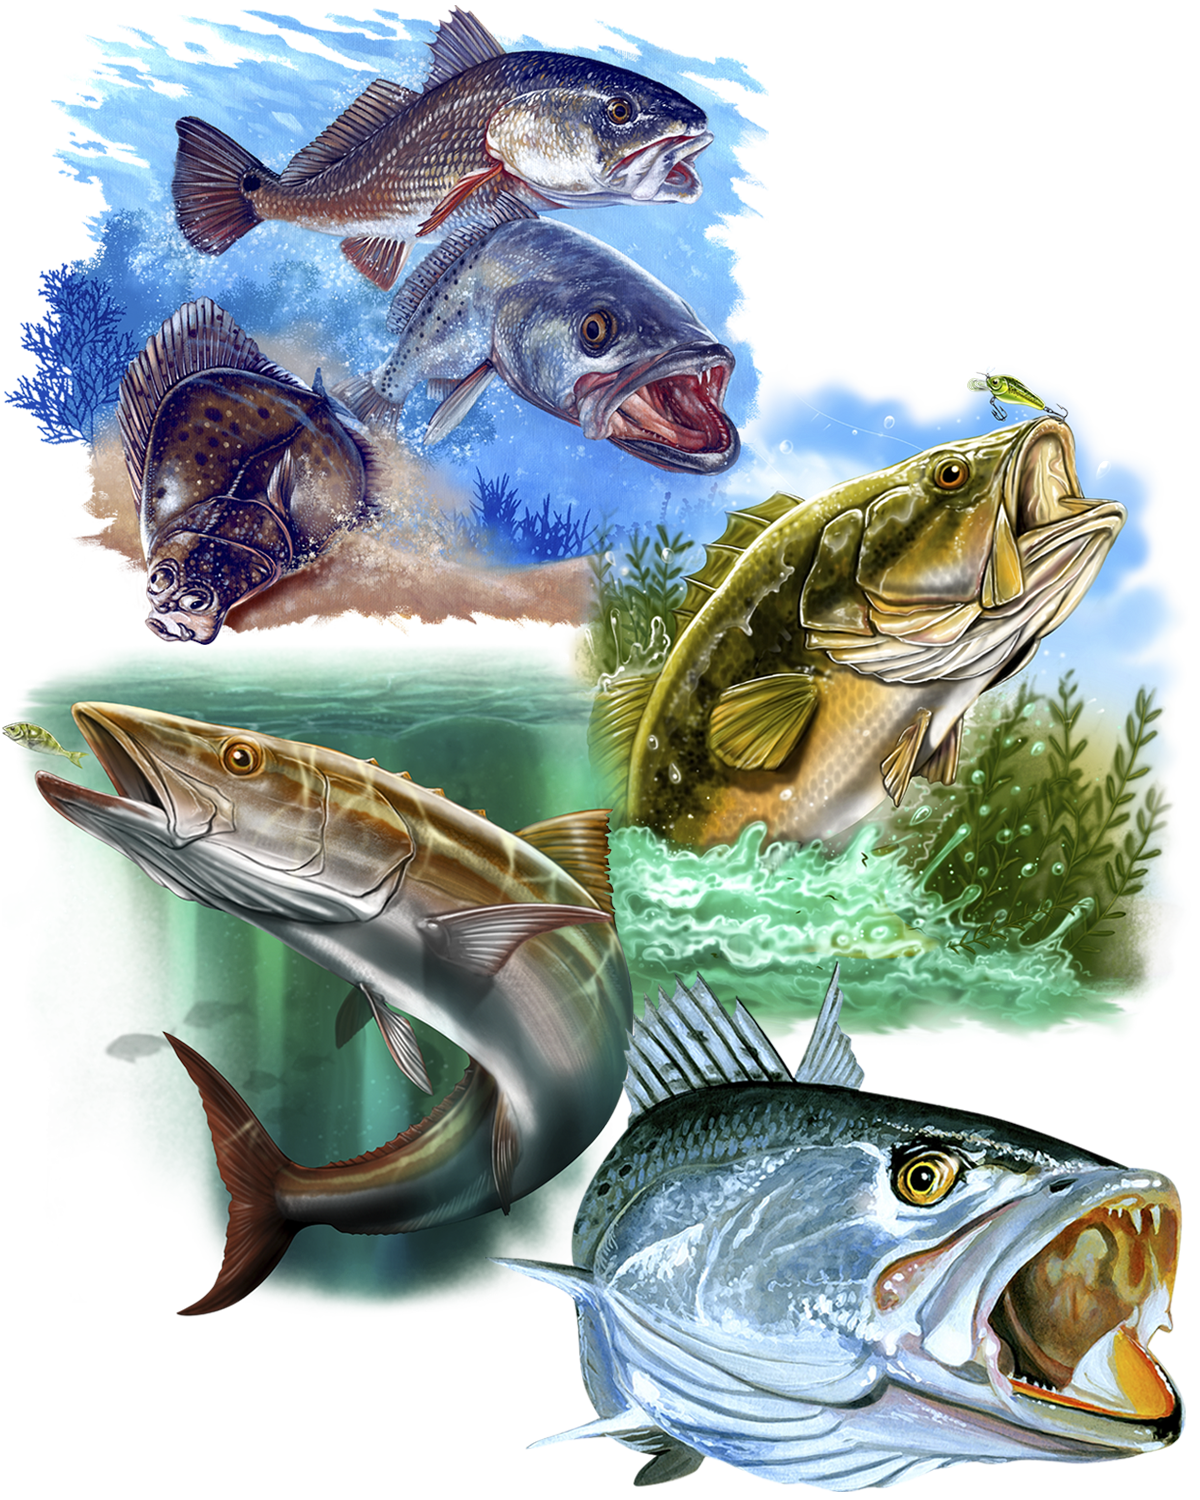 Great Dane Graphics Fishing Collage 2019